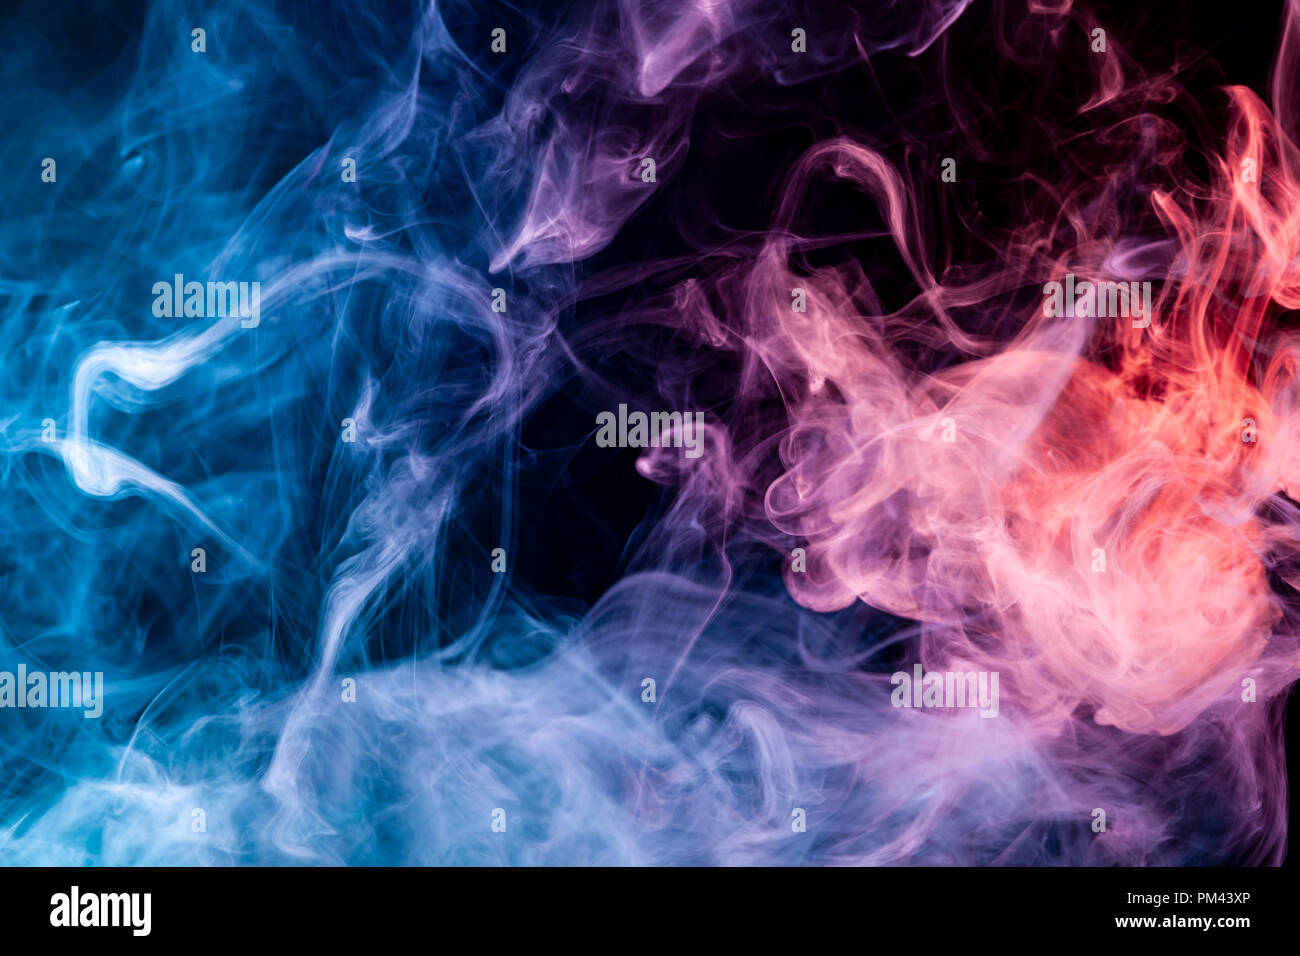 blue red and pink smoke on white background stock photo alamy https www alamy com blue red and pink smoke on white background image218908446 html